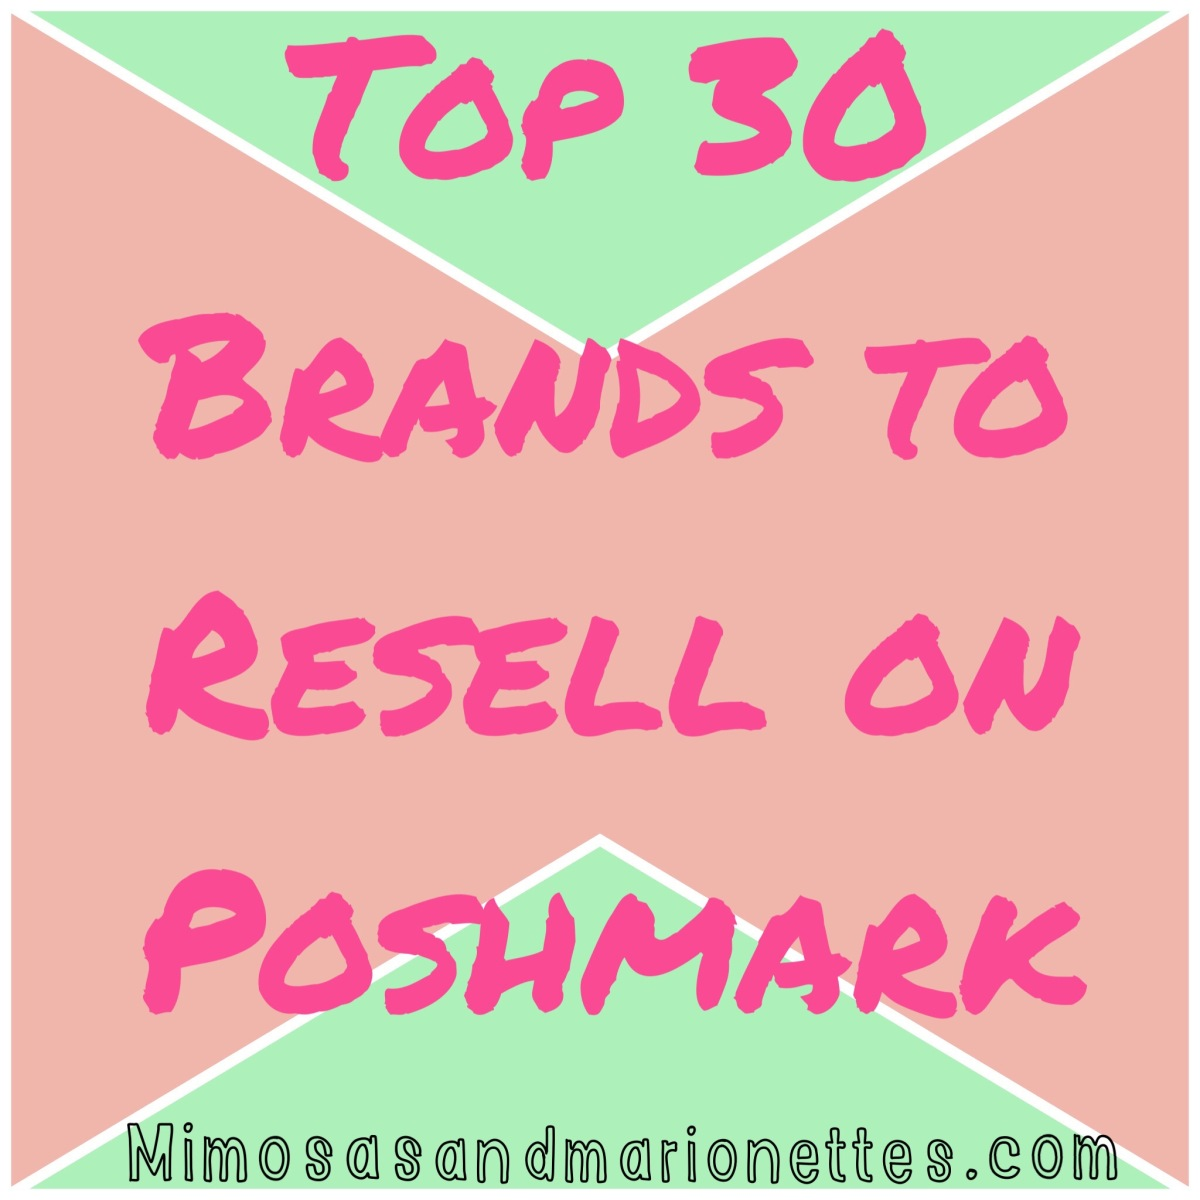 The Top 30 Brands to Resell on Poshmark